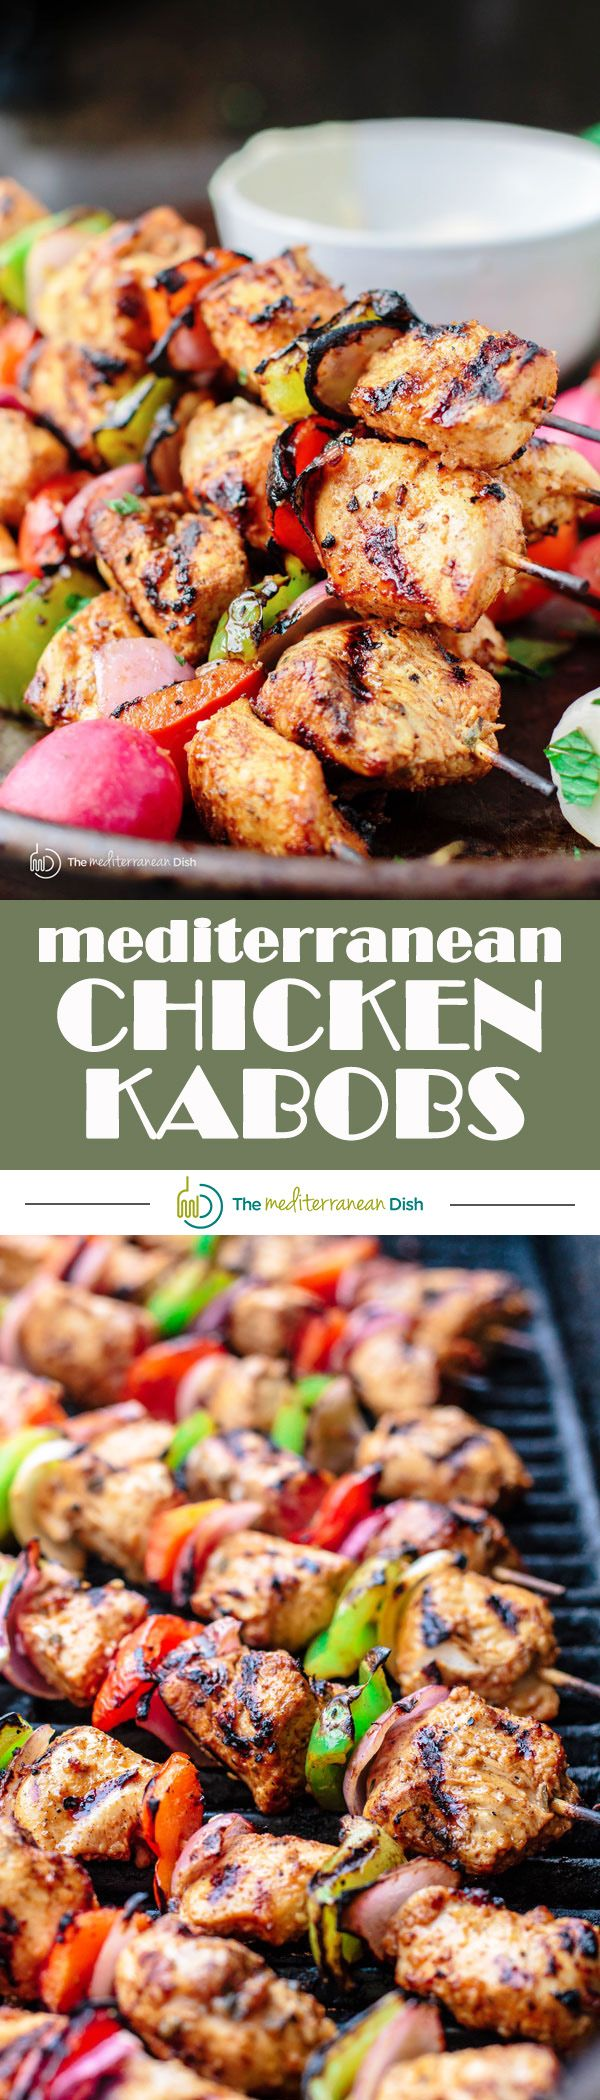 How long do i grill chicken kabobs - Mediterranean Grilled Chicken Kabobs Cayenne Tahini Sauce